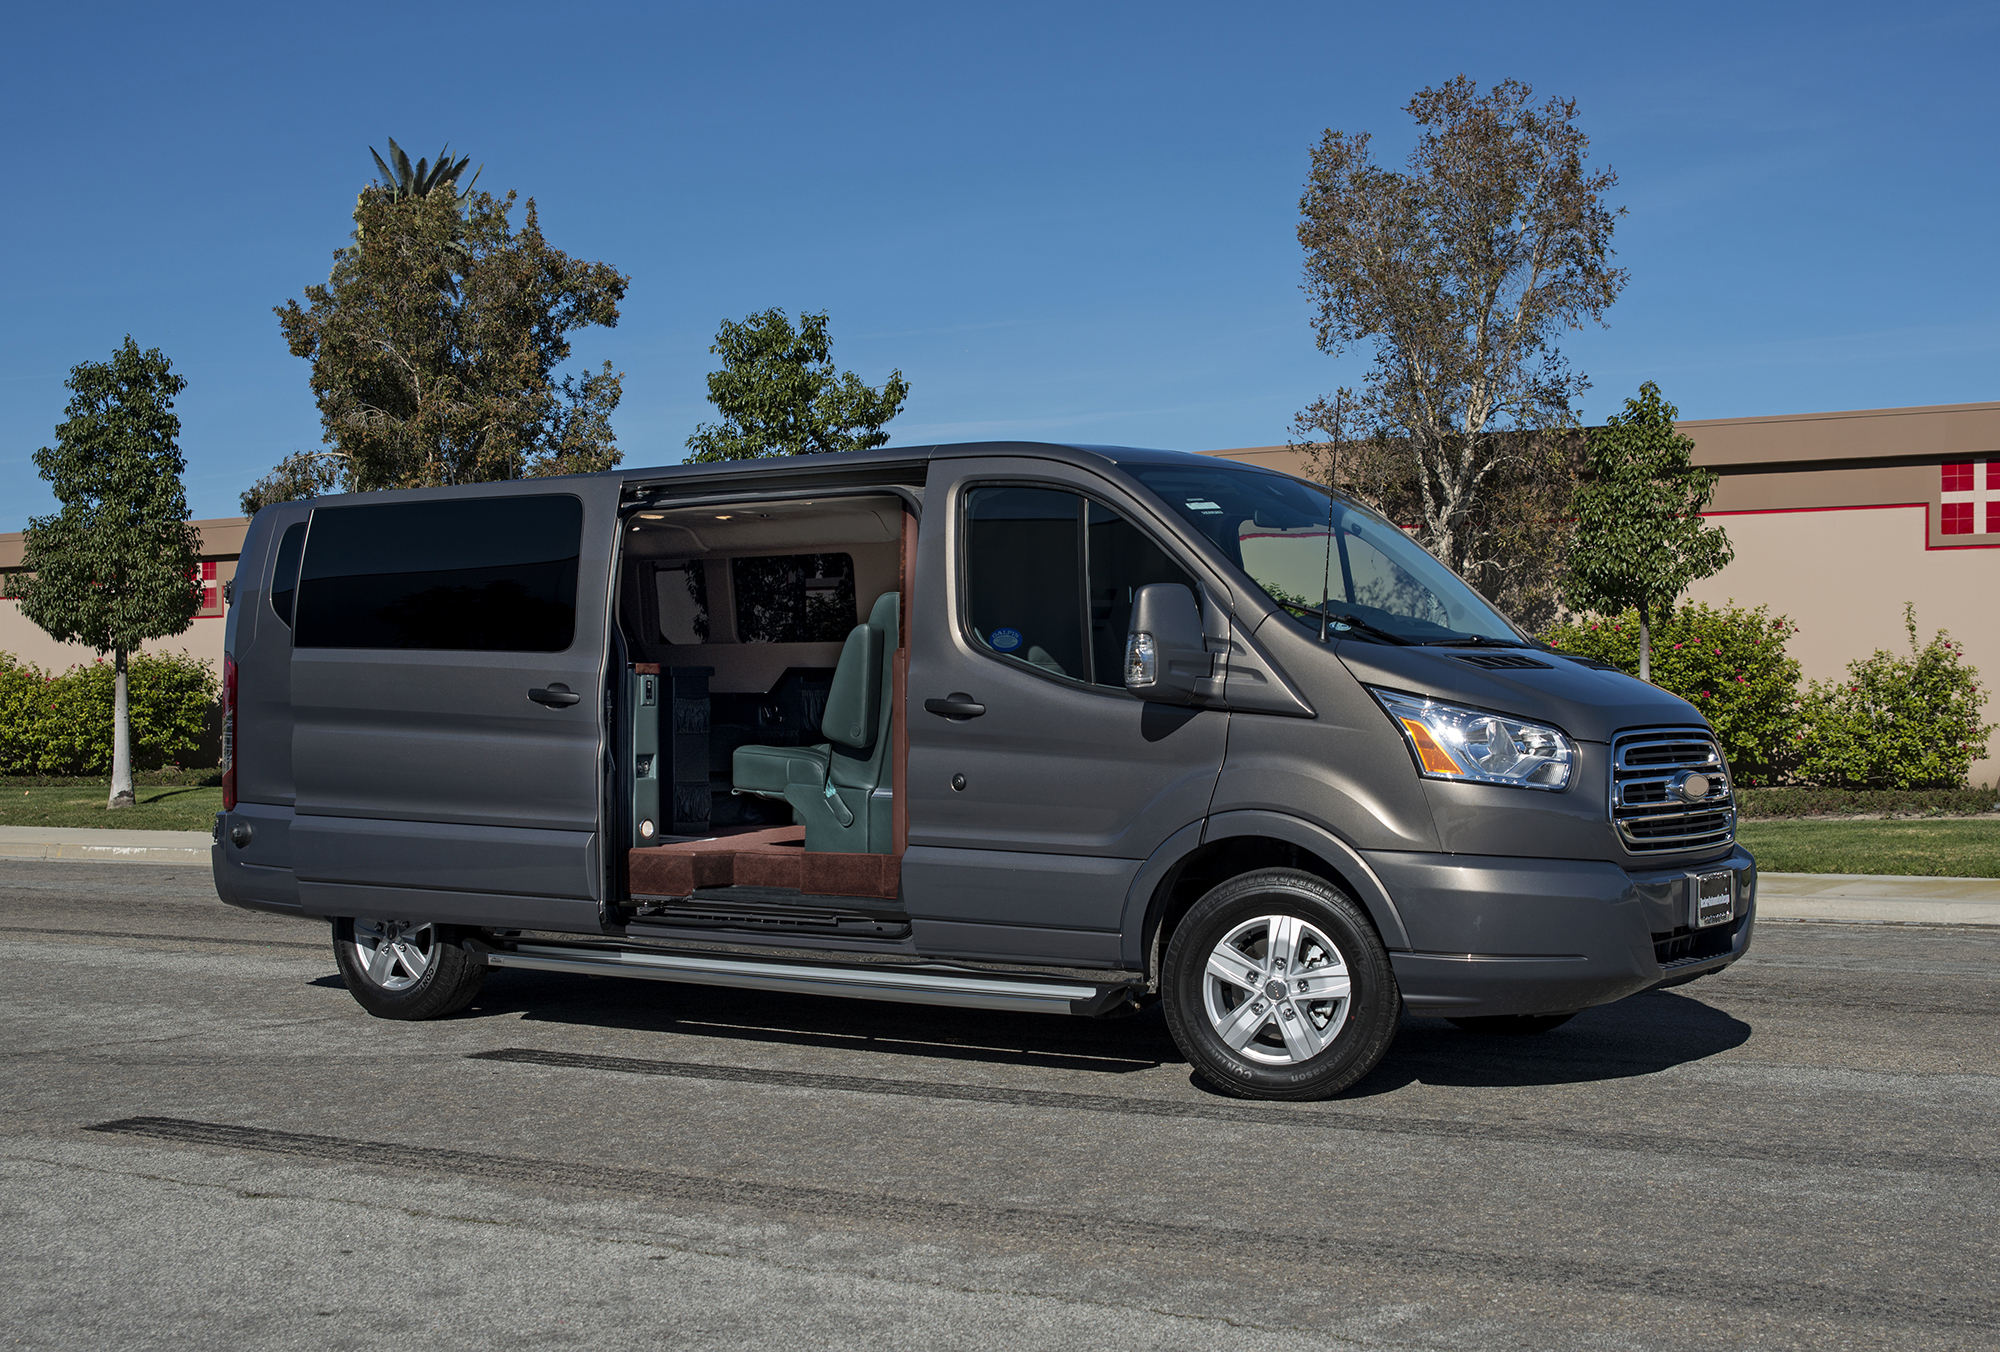 Suv >> Becker Automotive Design // Luxury Transport Coaches // Sprinter Van and Cadillac ESV Conversions